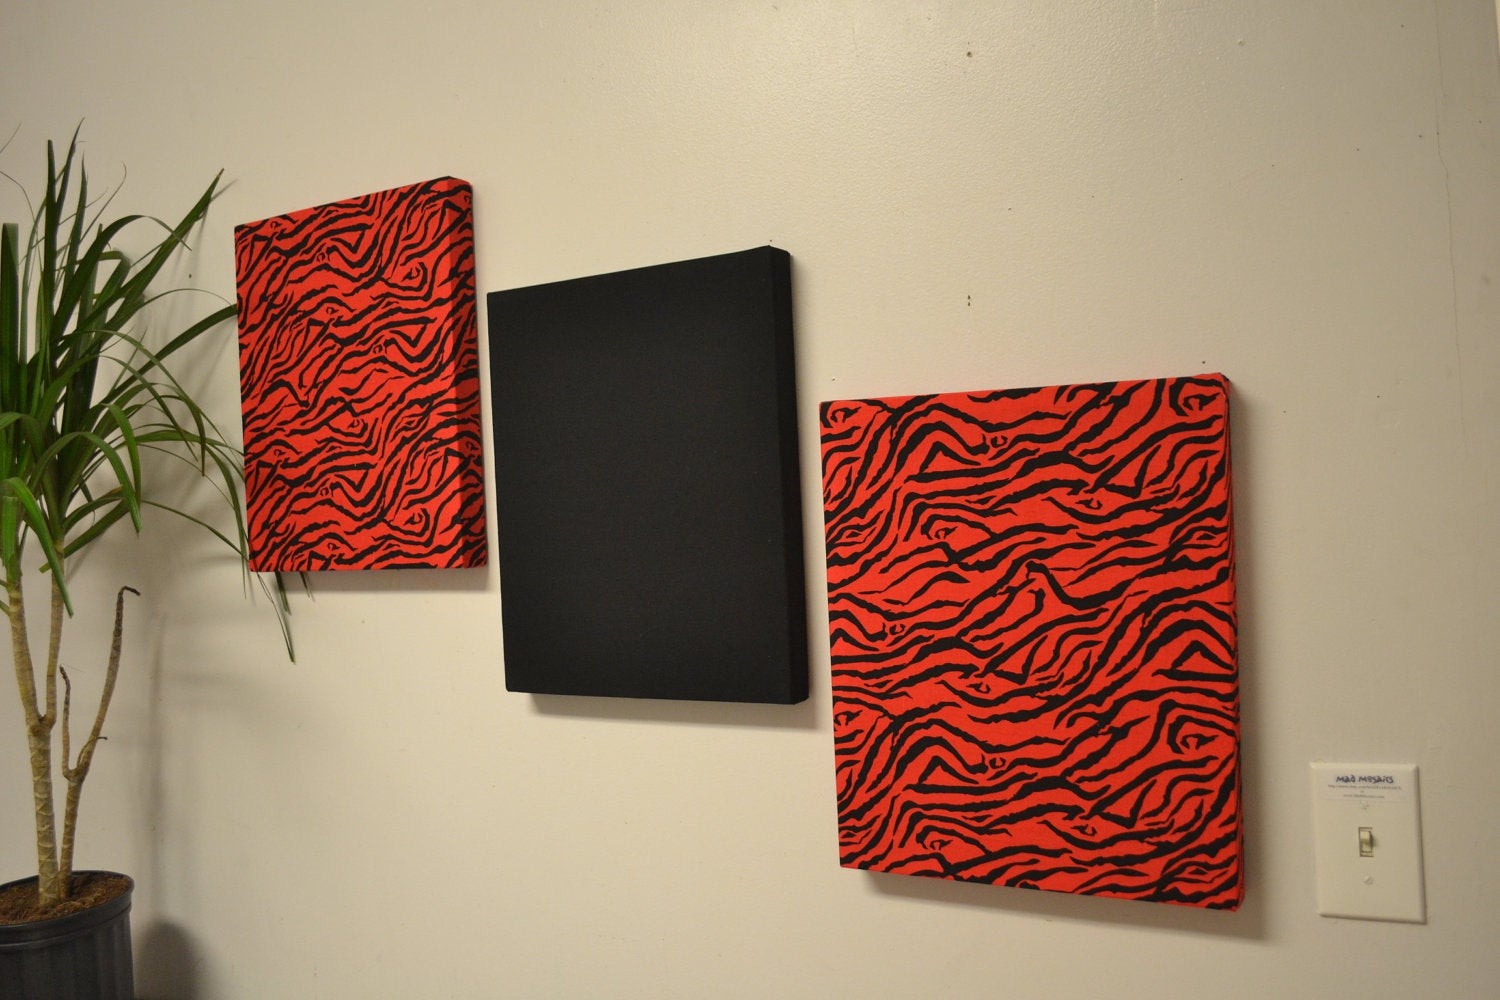 Best ideas about Red Wall Art . Save or Pin Red zebra wall decor canvas wall hangings black by MadMosaics Now.